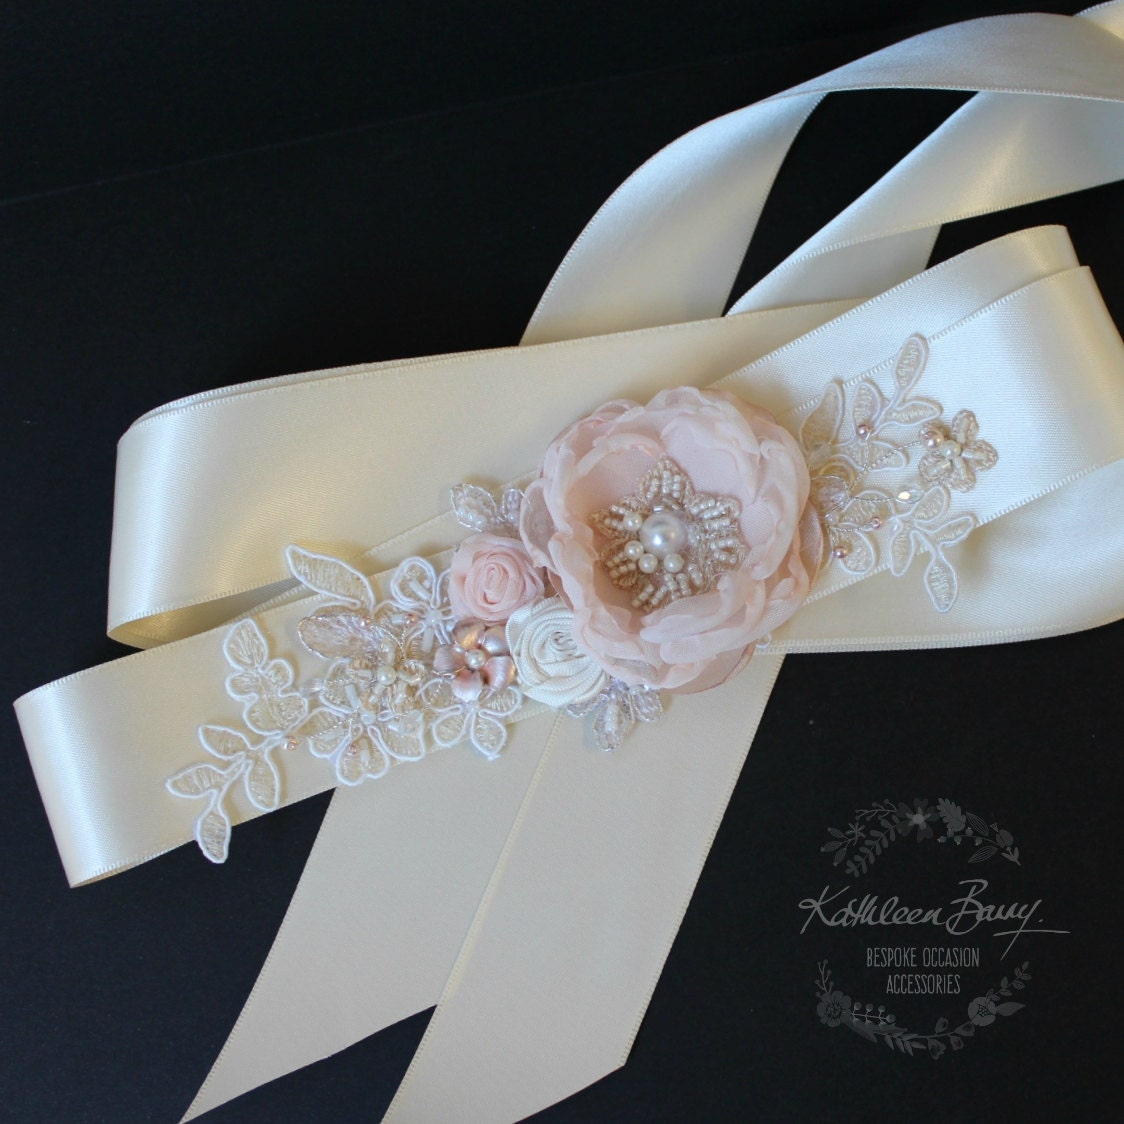 Wedding dress sash Bridal belt floral by KathleenBarryJewelry